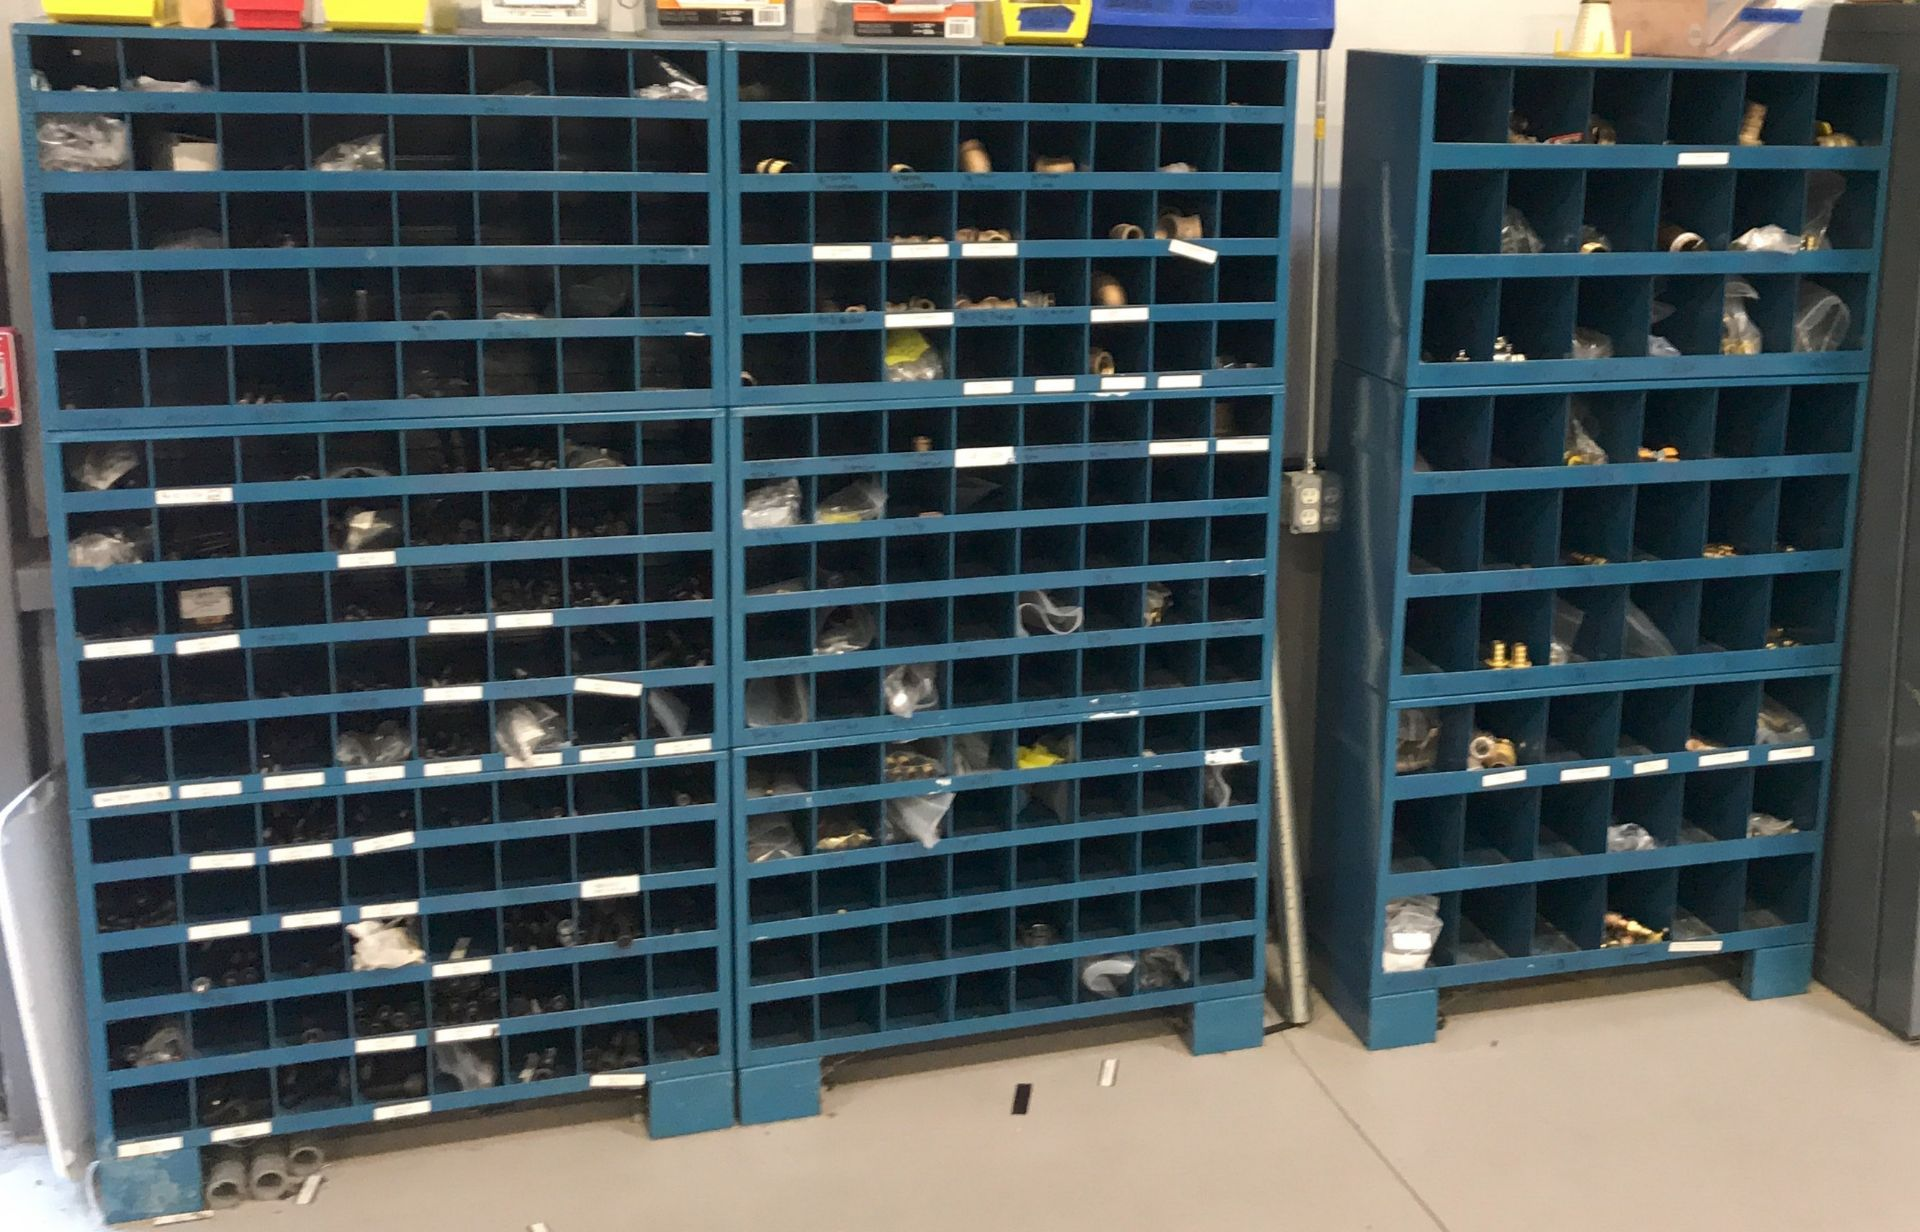 LOT/ PIGEON HOLE TYPE HARDWARE STORAGE CABINETS (NO CONTENTS) [RIGGING FEES FOR LOT# 42 - $100 USD